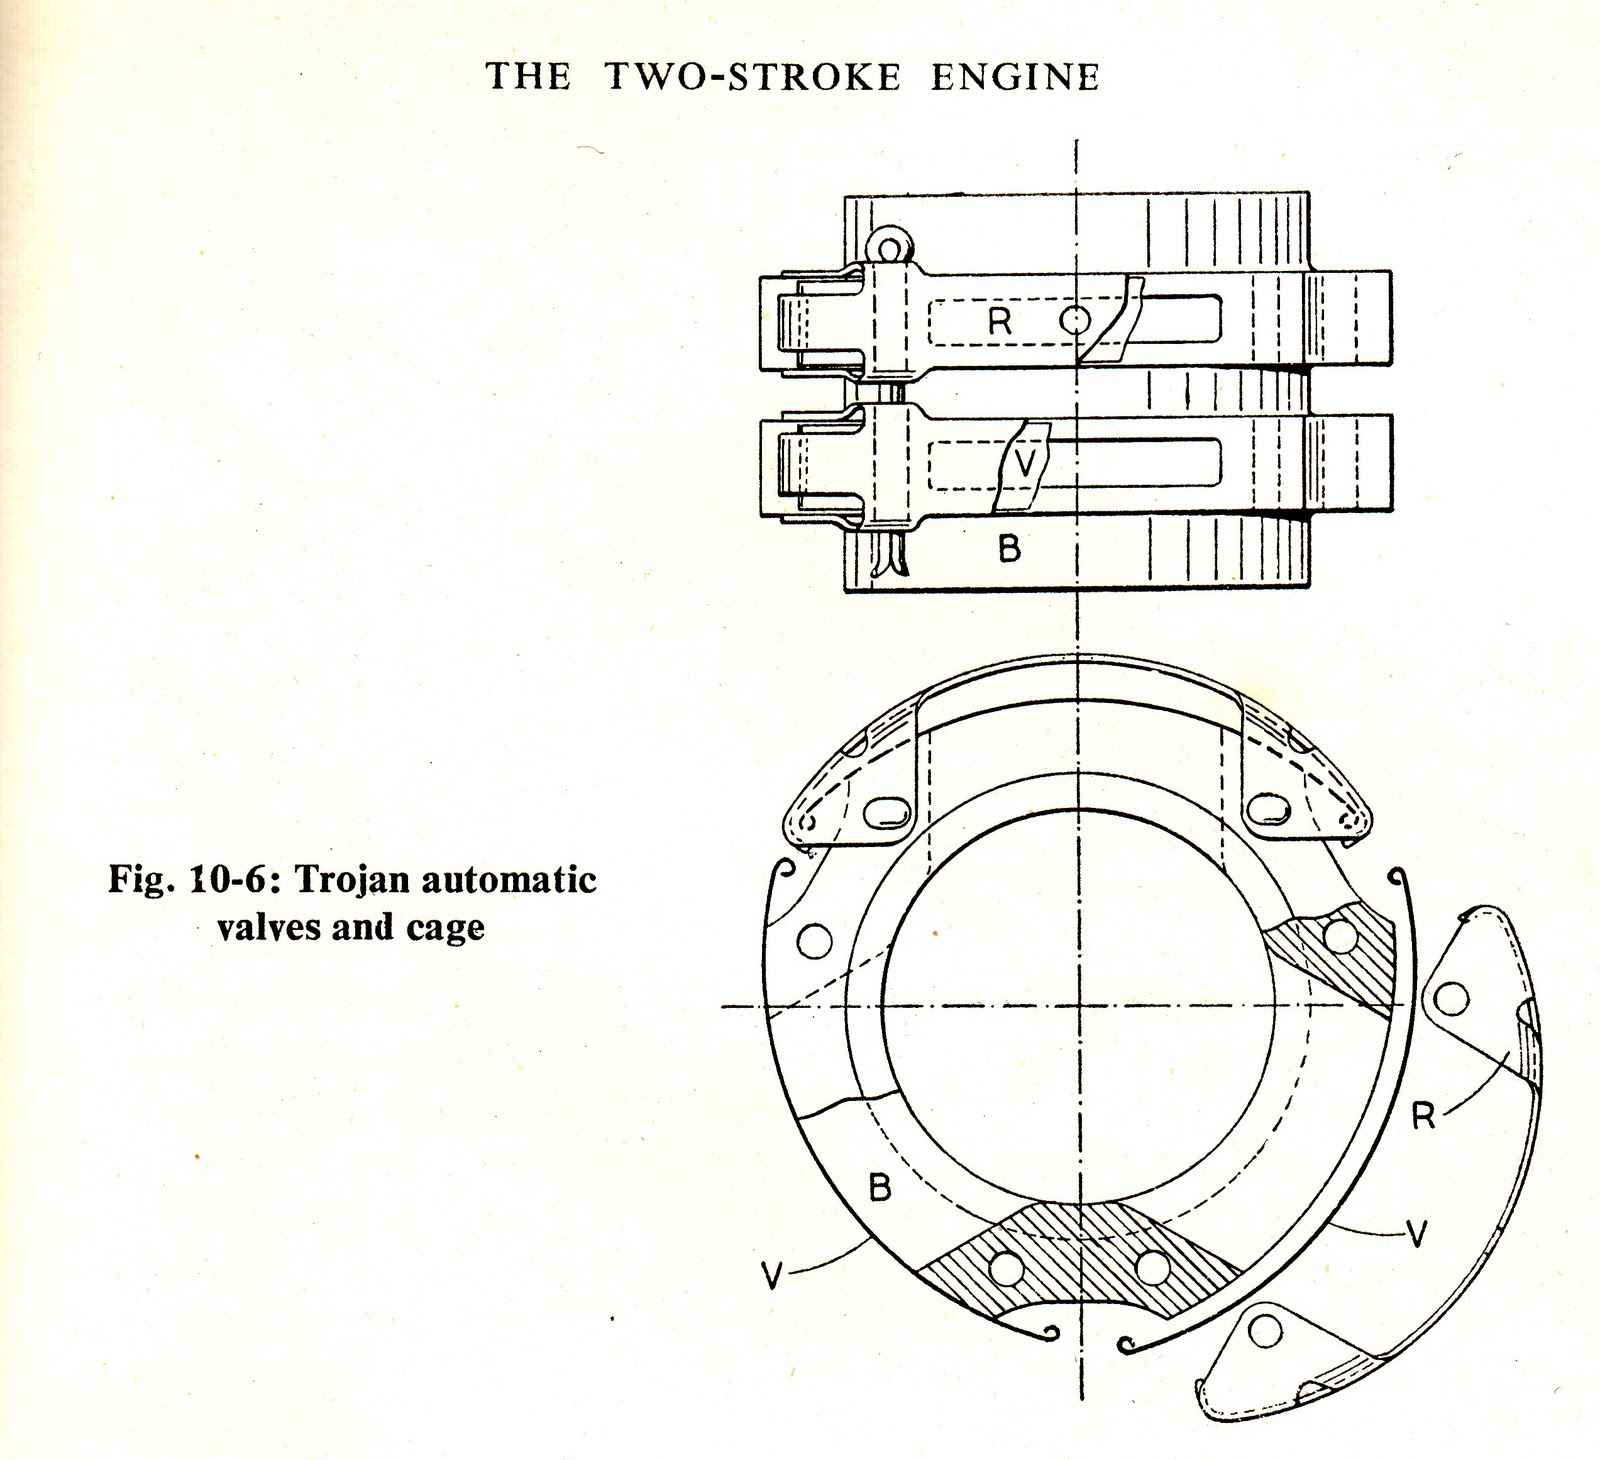 medium resolution of trojan automatic valves and cage